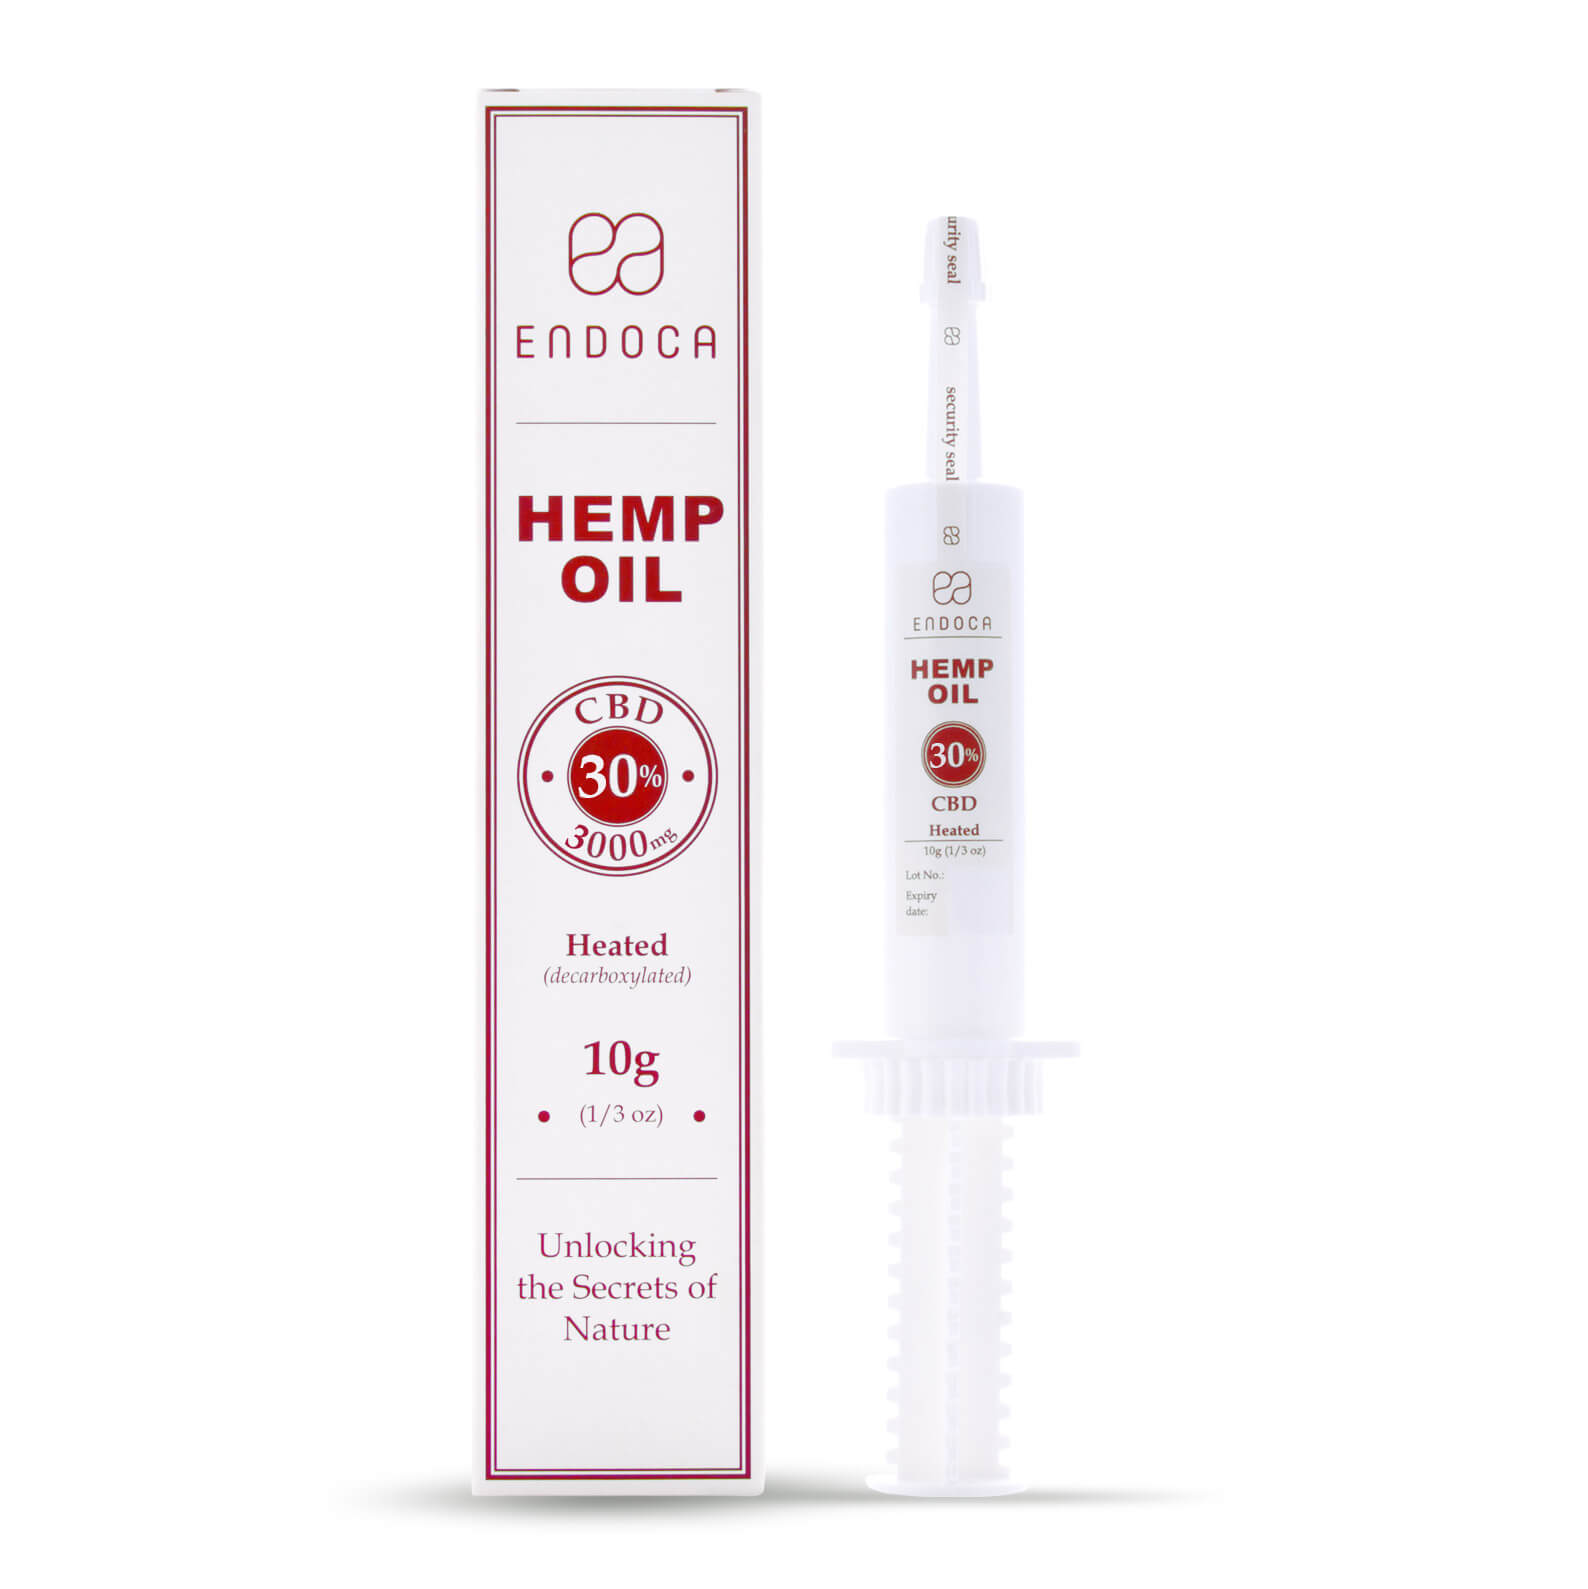 HEMP OIL EXTRACT 300MG CBD/ML